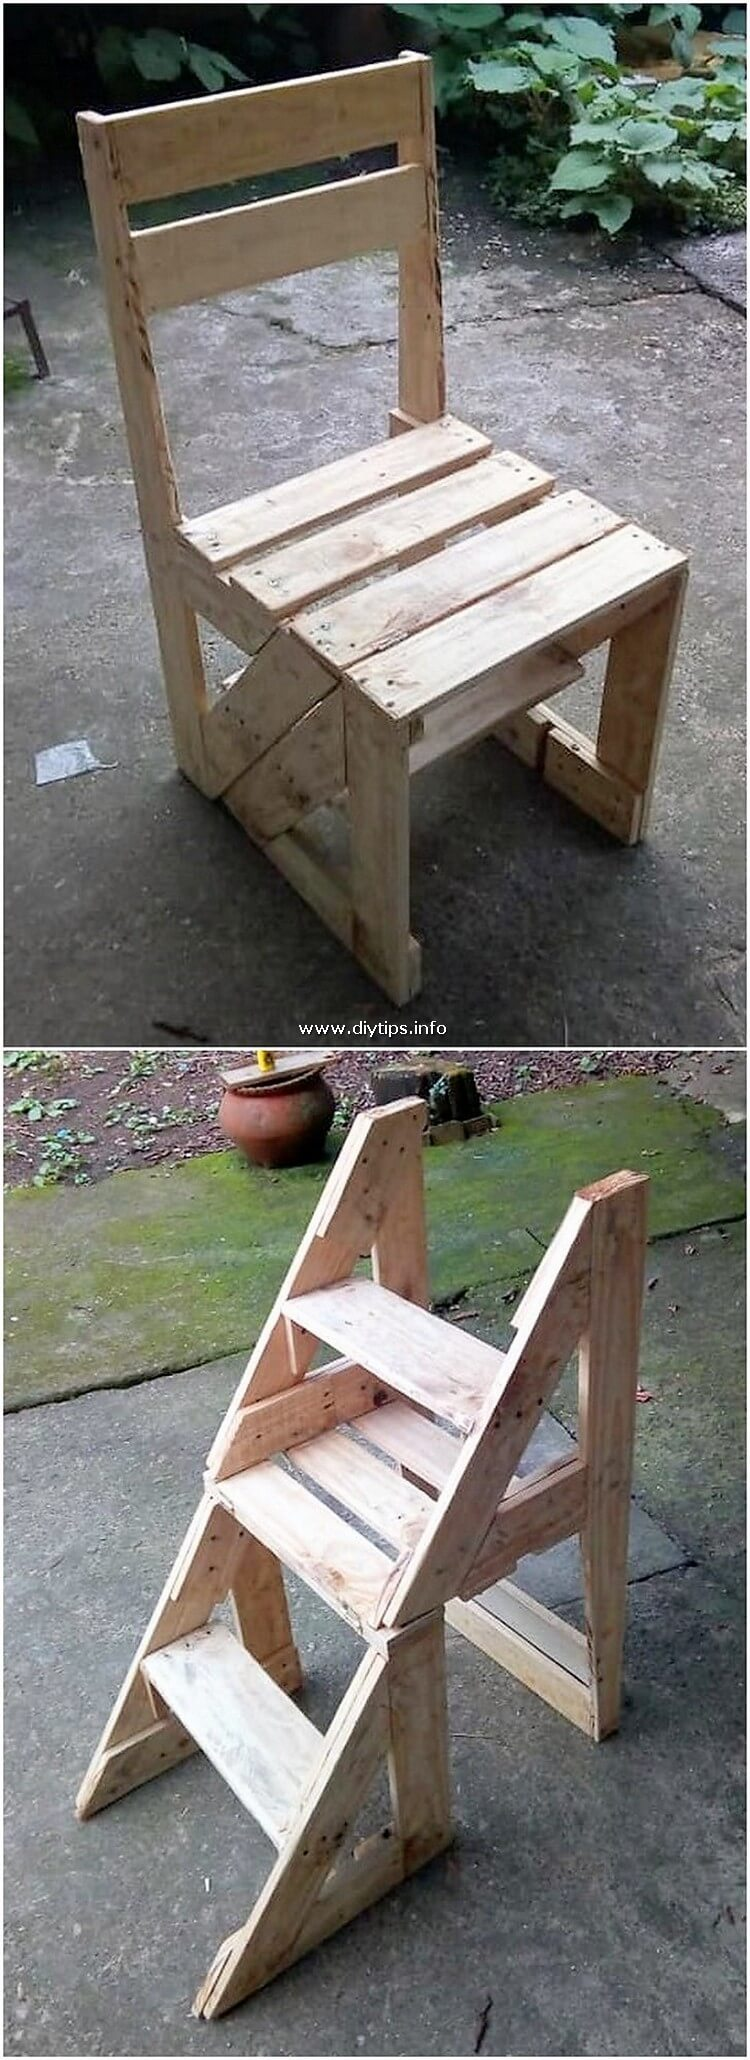 Pallet Chair or Shelving Stand